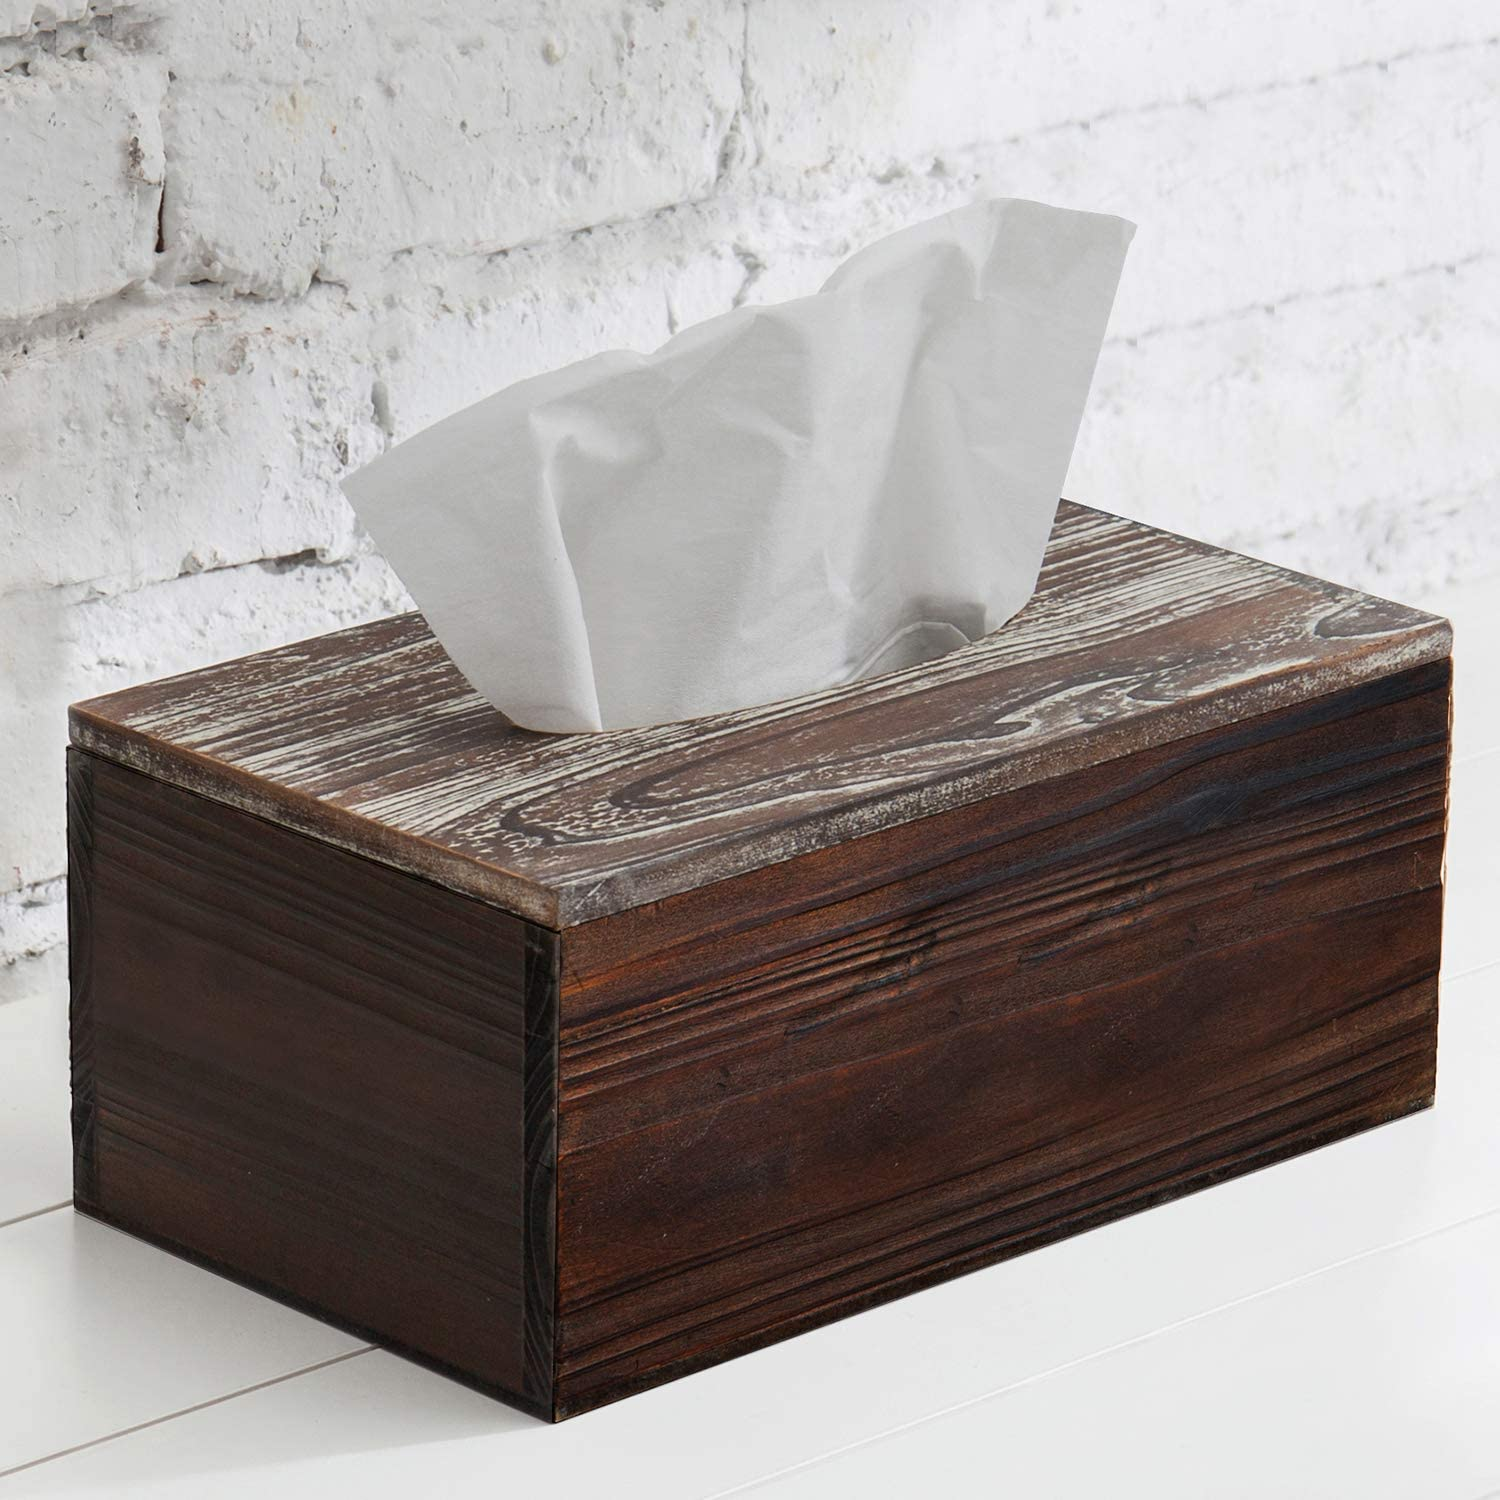 MyGift Rustic Distressed Textured Torched Wood Tissue Box Holder